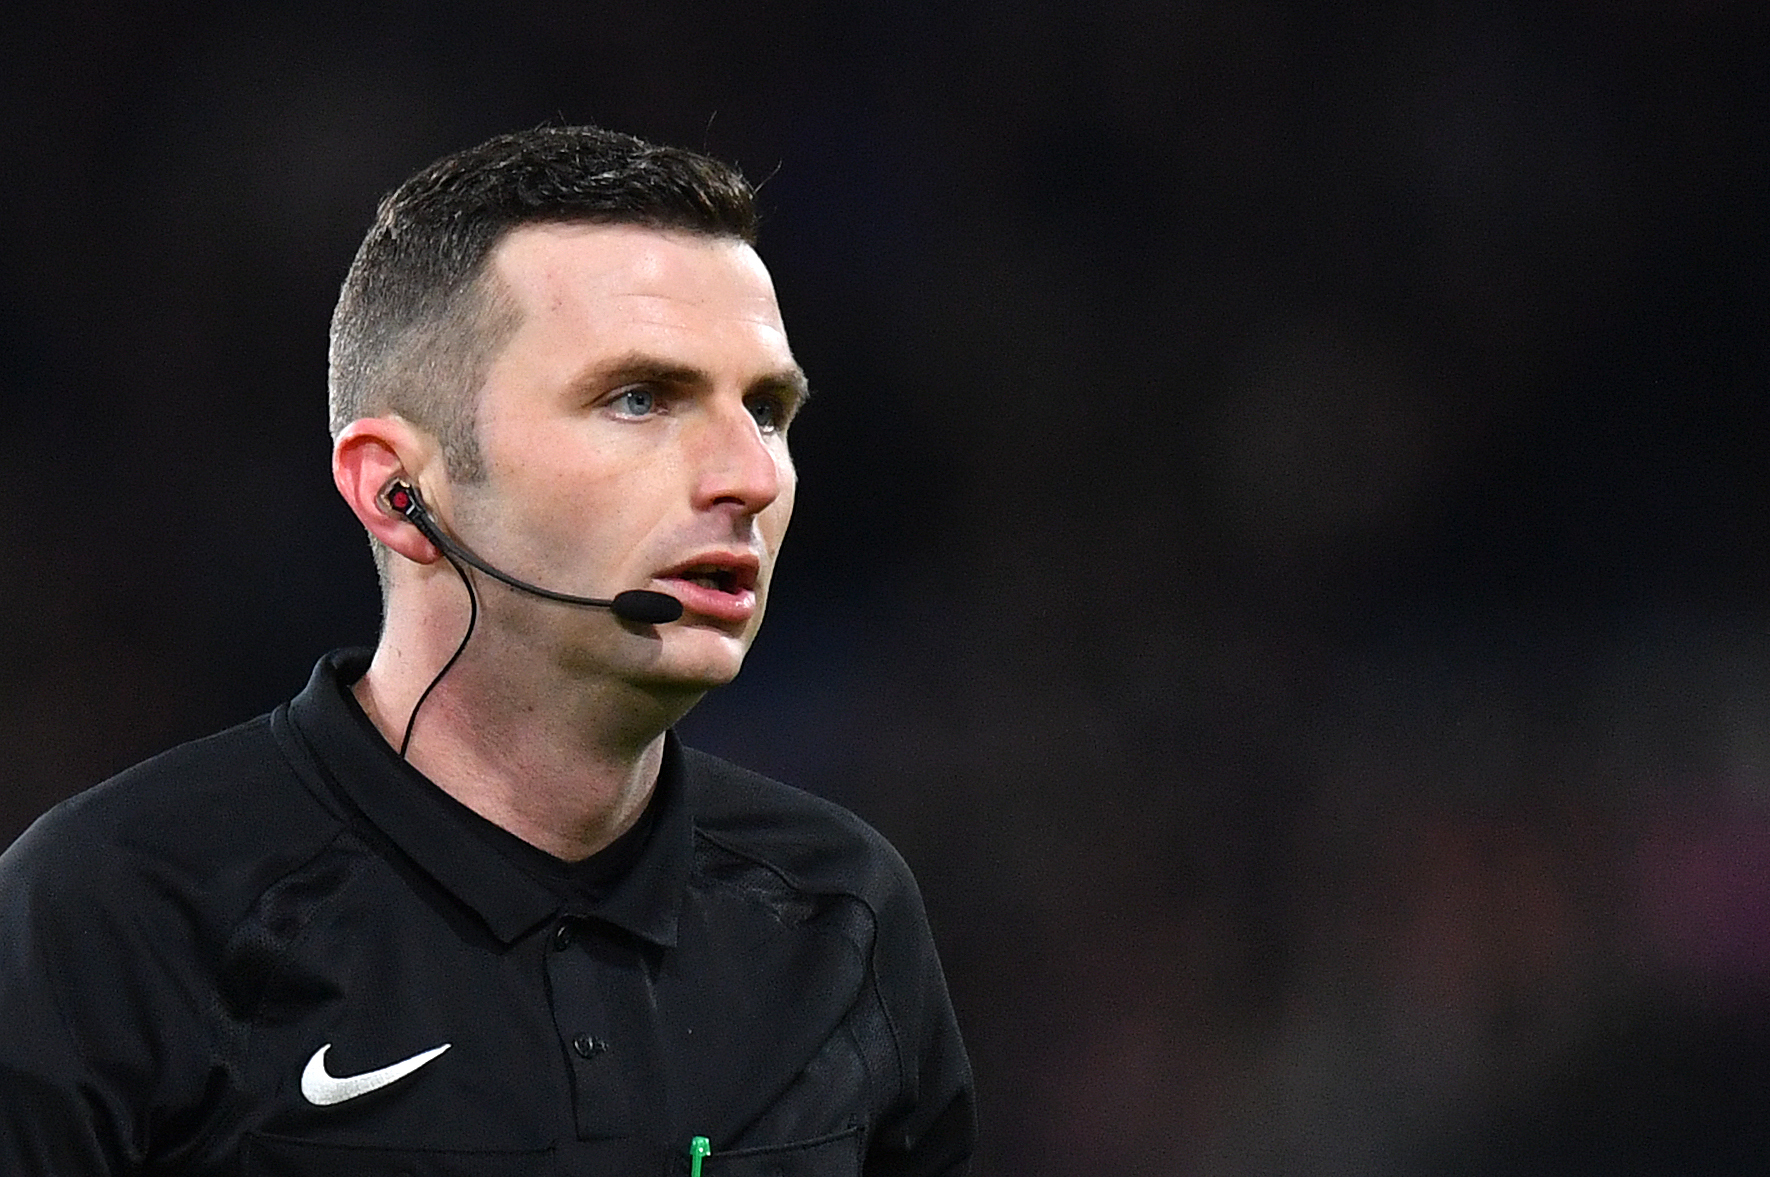 Football referee Michael Oliver